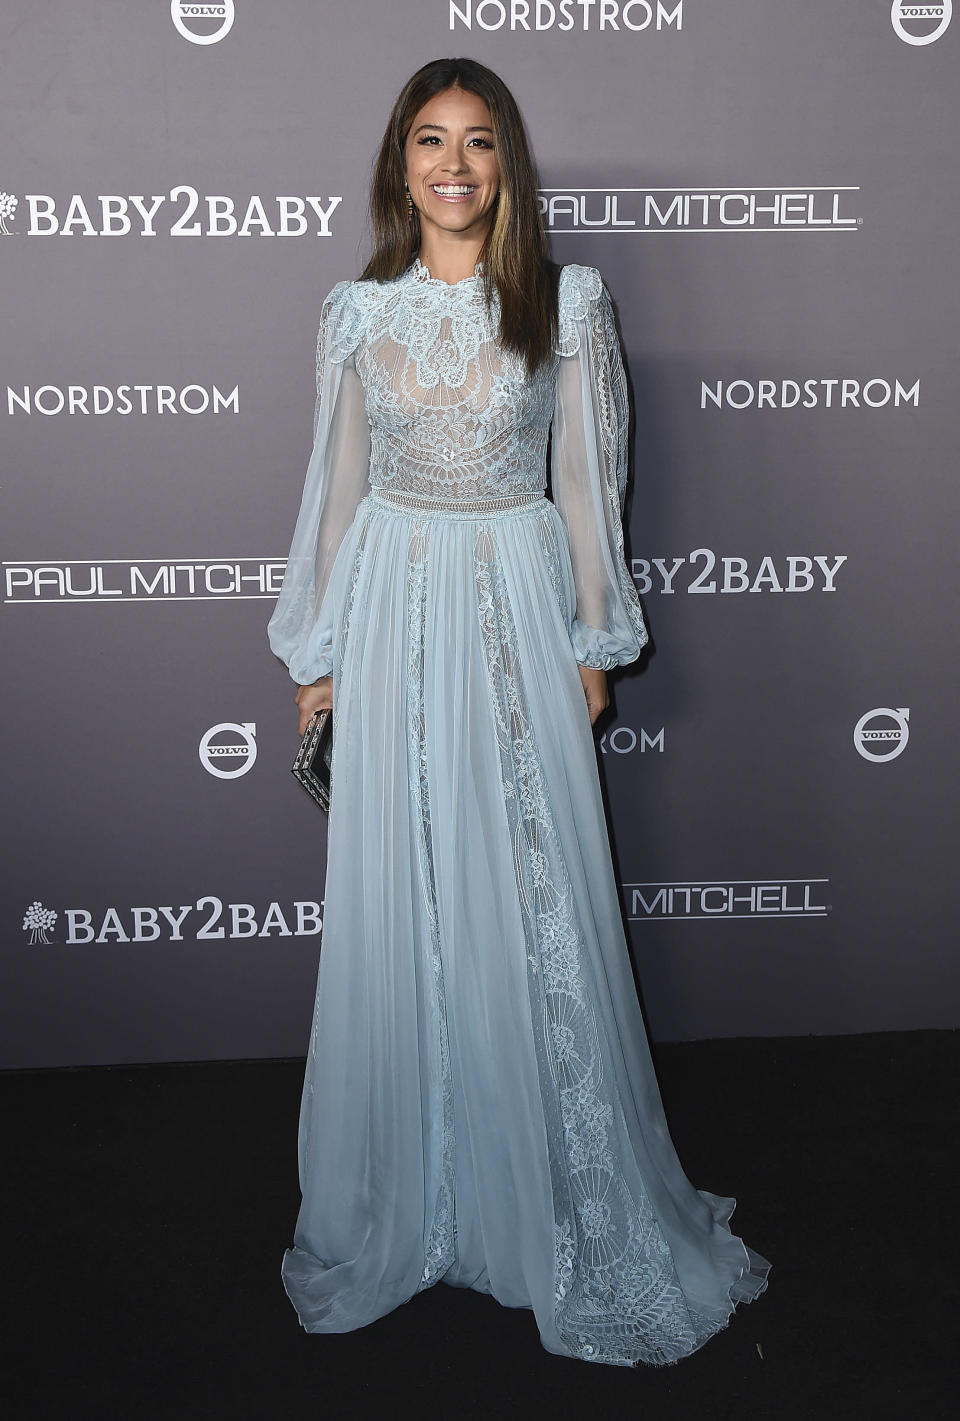 FILE - Gina Rodriguez arrives at the Baby2Baby Gala on Nov. 9, 2019, in Culver City, Calif. Rodriguez turns 37 on July 30. (Photo by Jordan Strauss/Invision/AP, File)